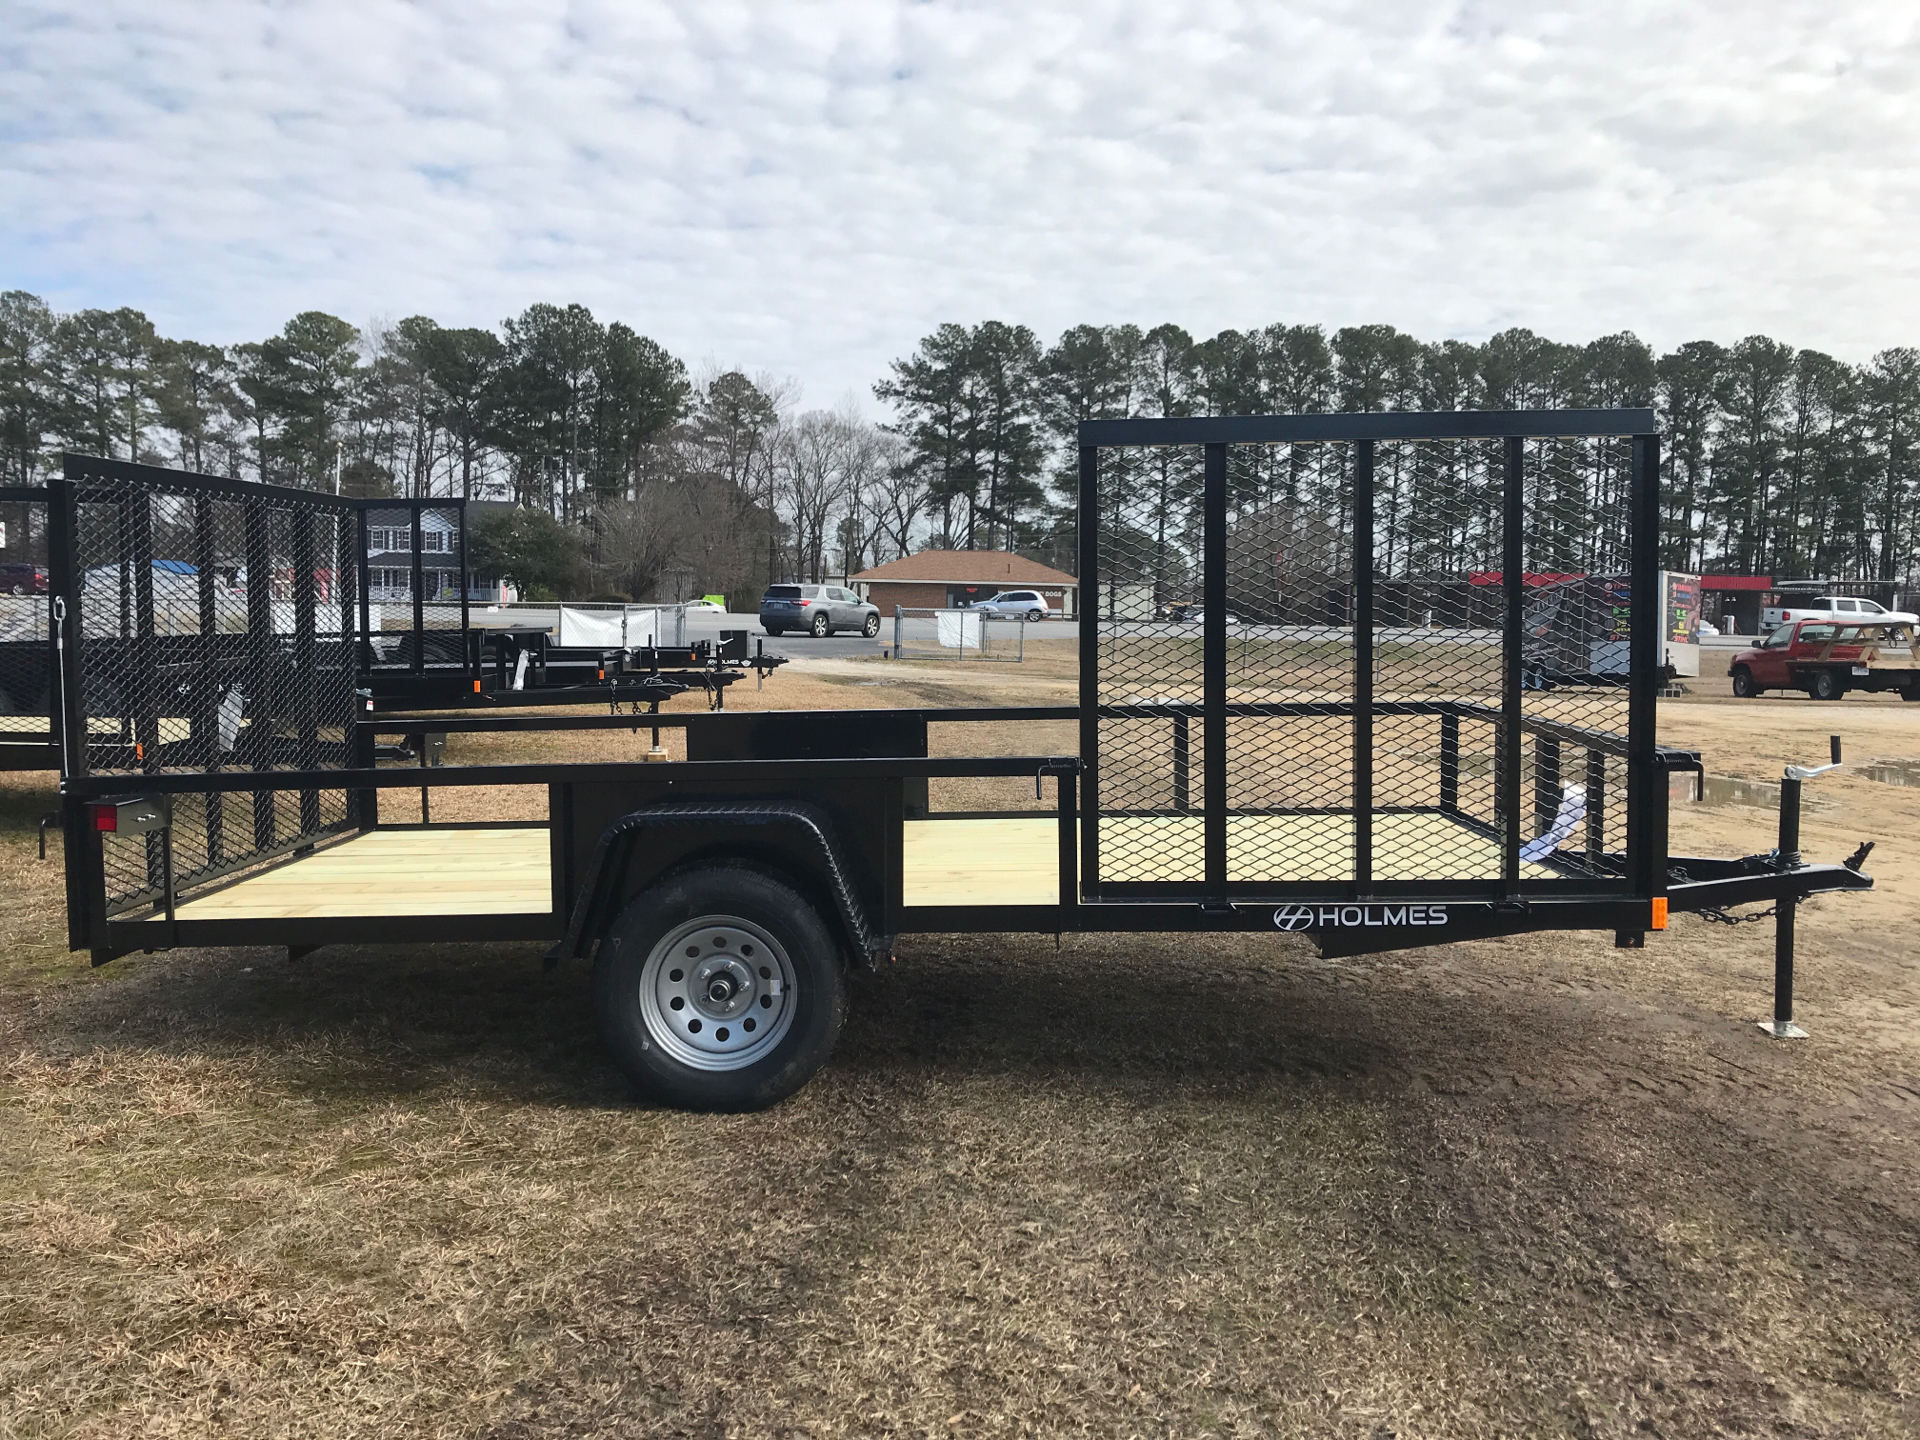 2021 Holmes 6.4 x 14 3.5k axle w/Side Gate in Greenville, North Carolina - Photo 2